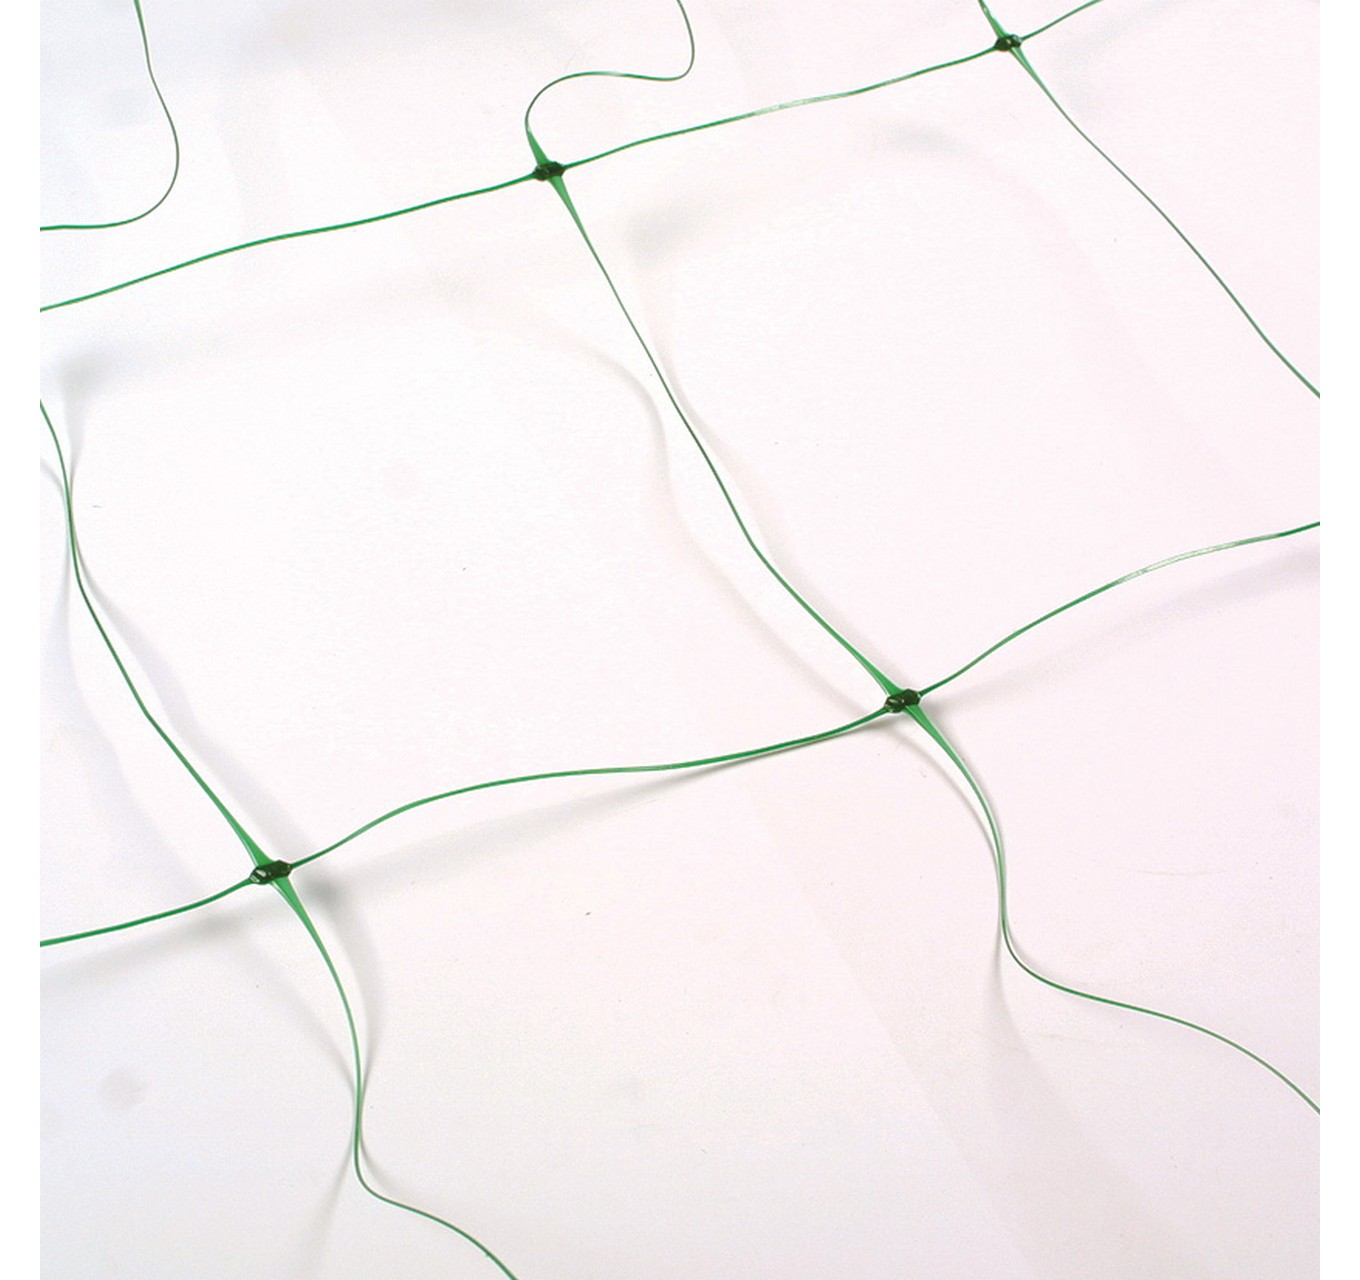 Bean and Pea Support Net 7x2m